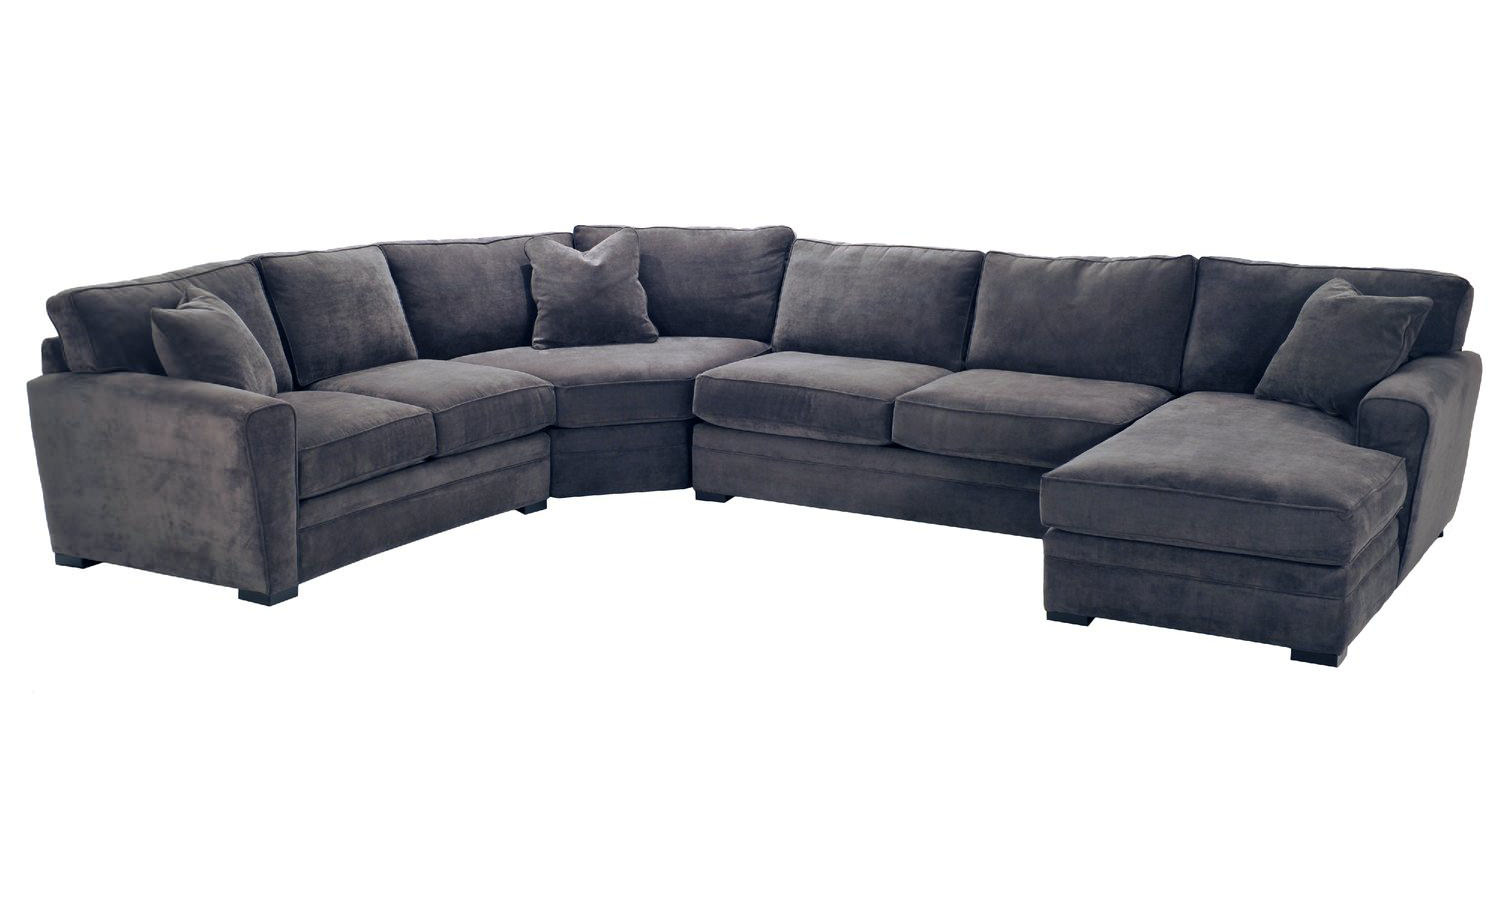 4 Piece Sectional Sofa Wilcot 4 Piece Sofa Sectional